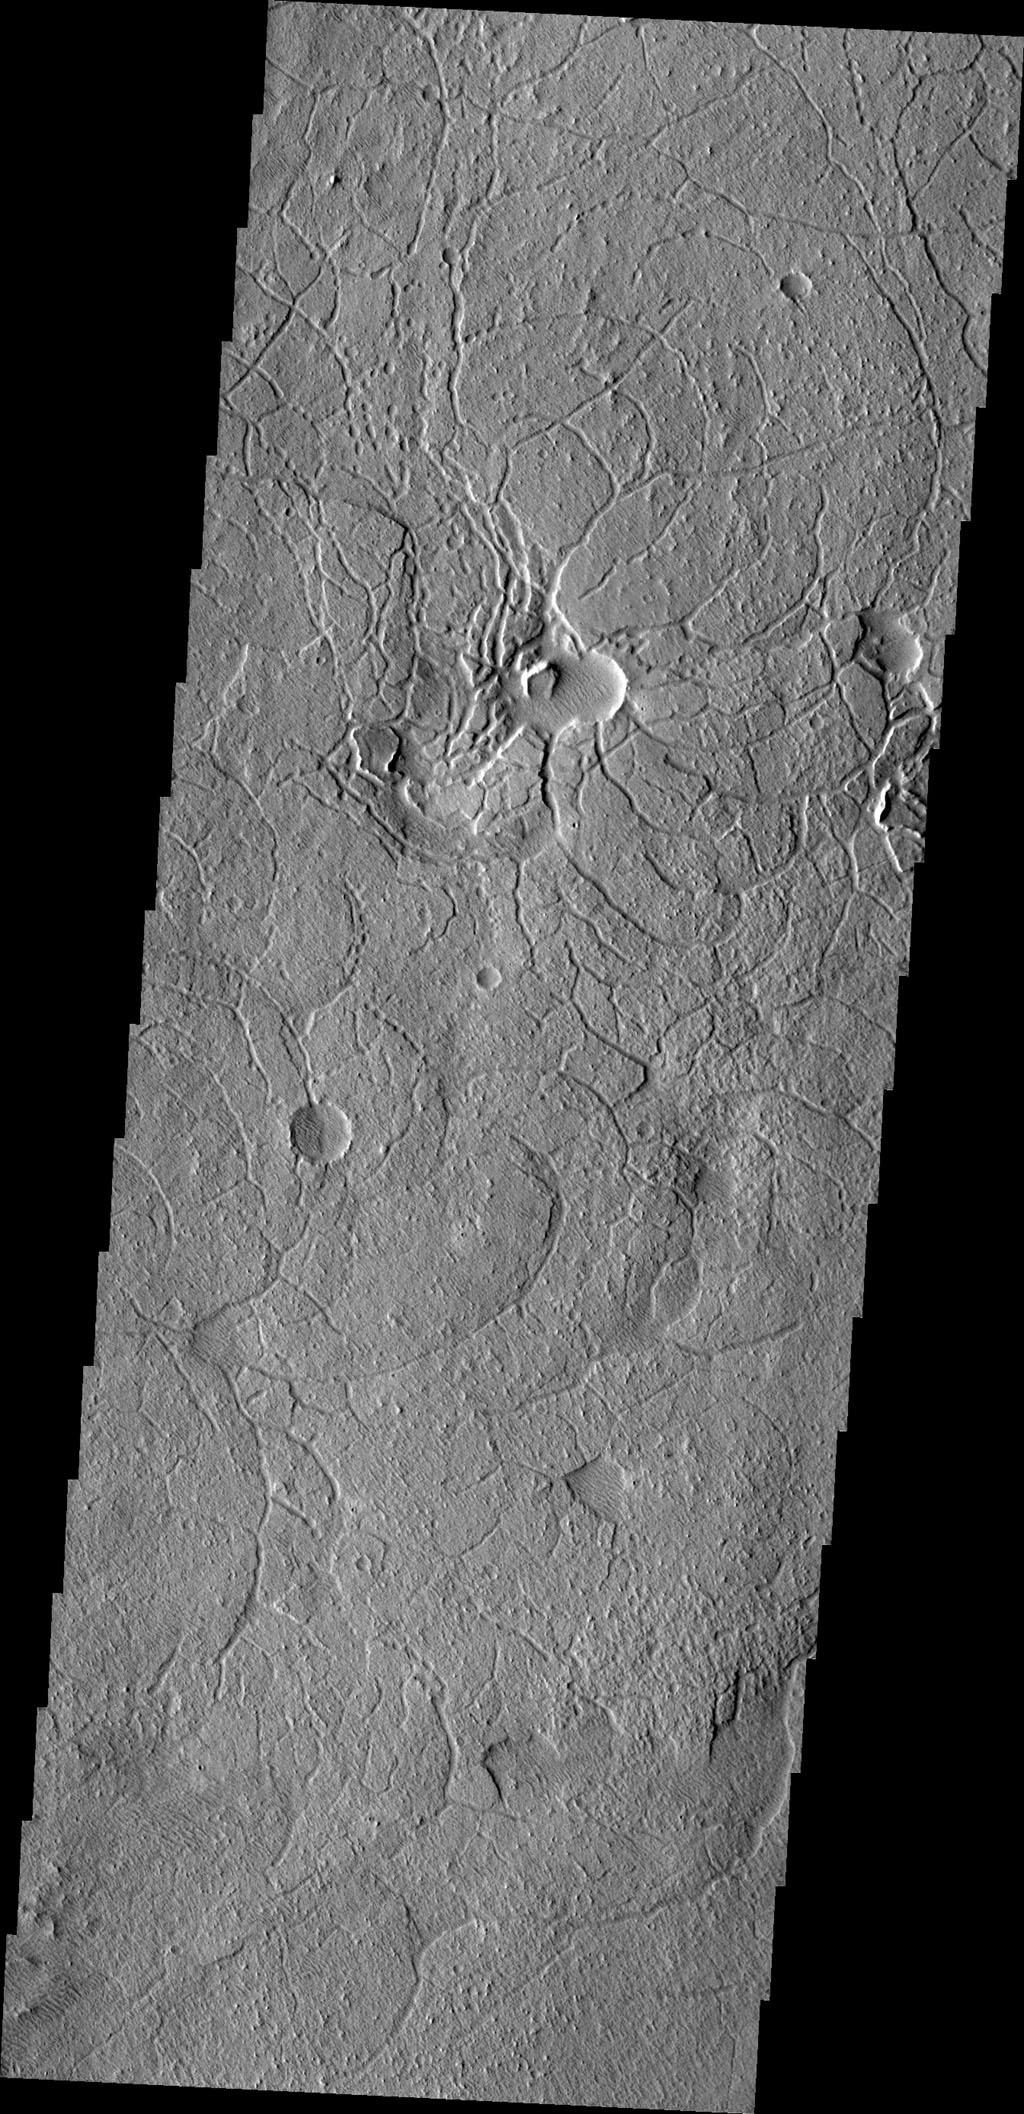 This region of arcuate (or curved) fractures is located north of Apollinaris Mons as seen by NASA's 2001 Mars Odyssey spacecraft.